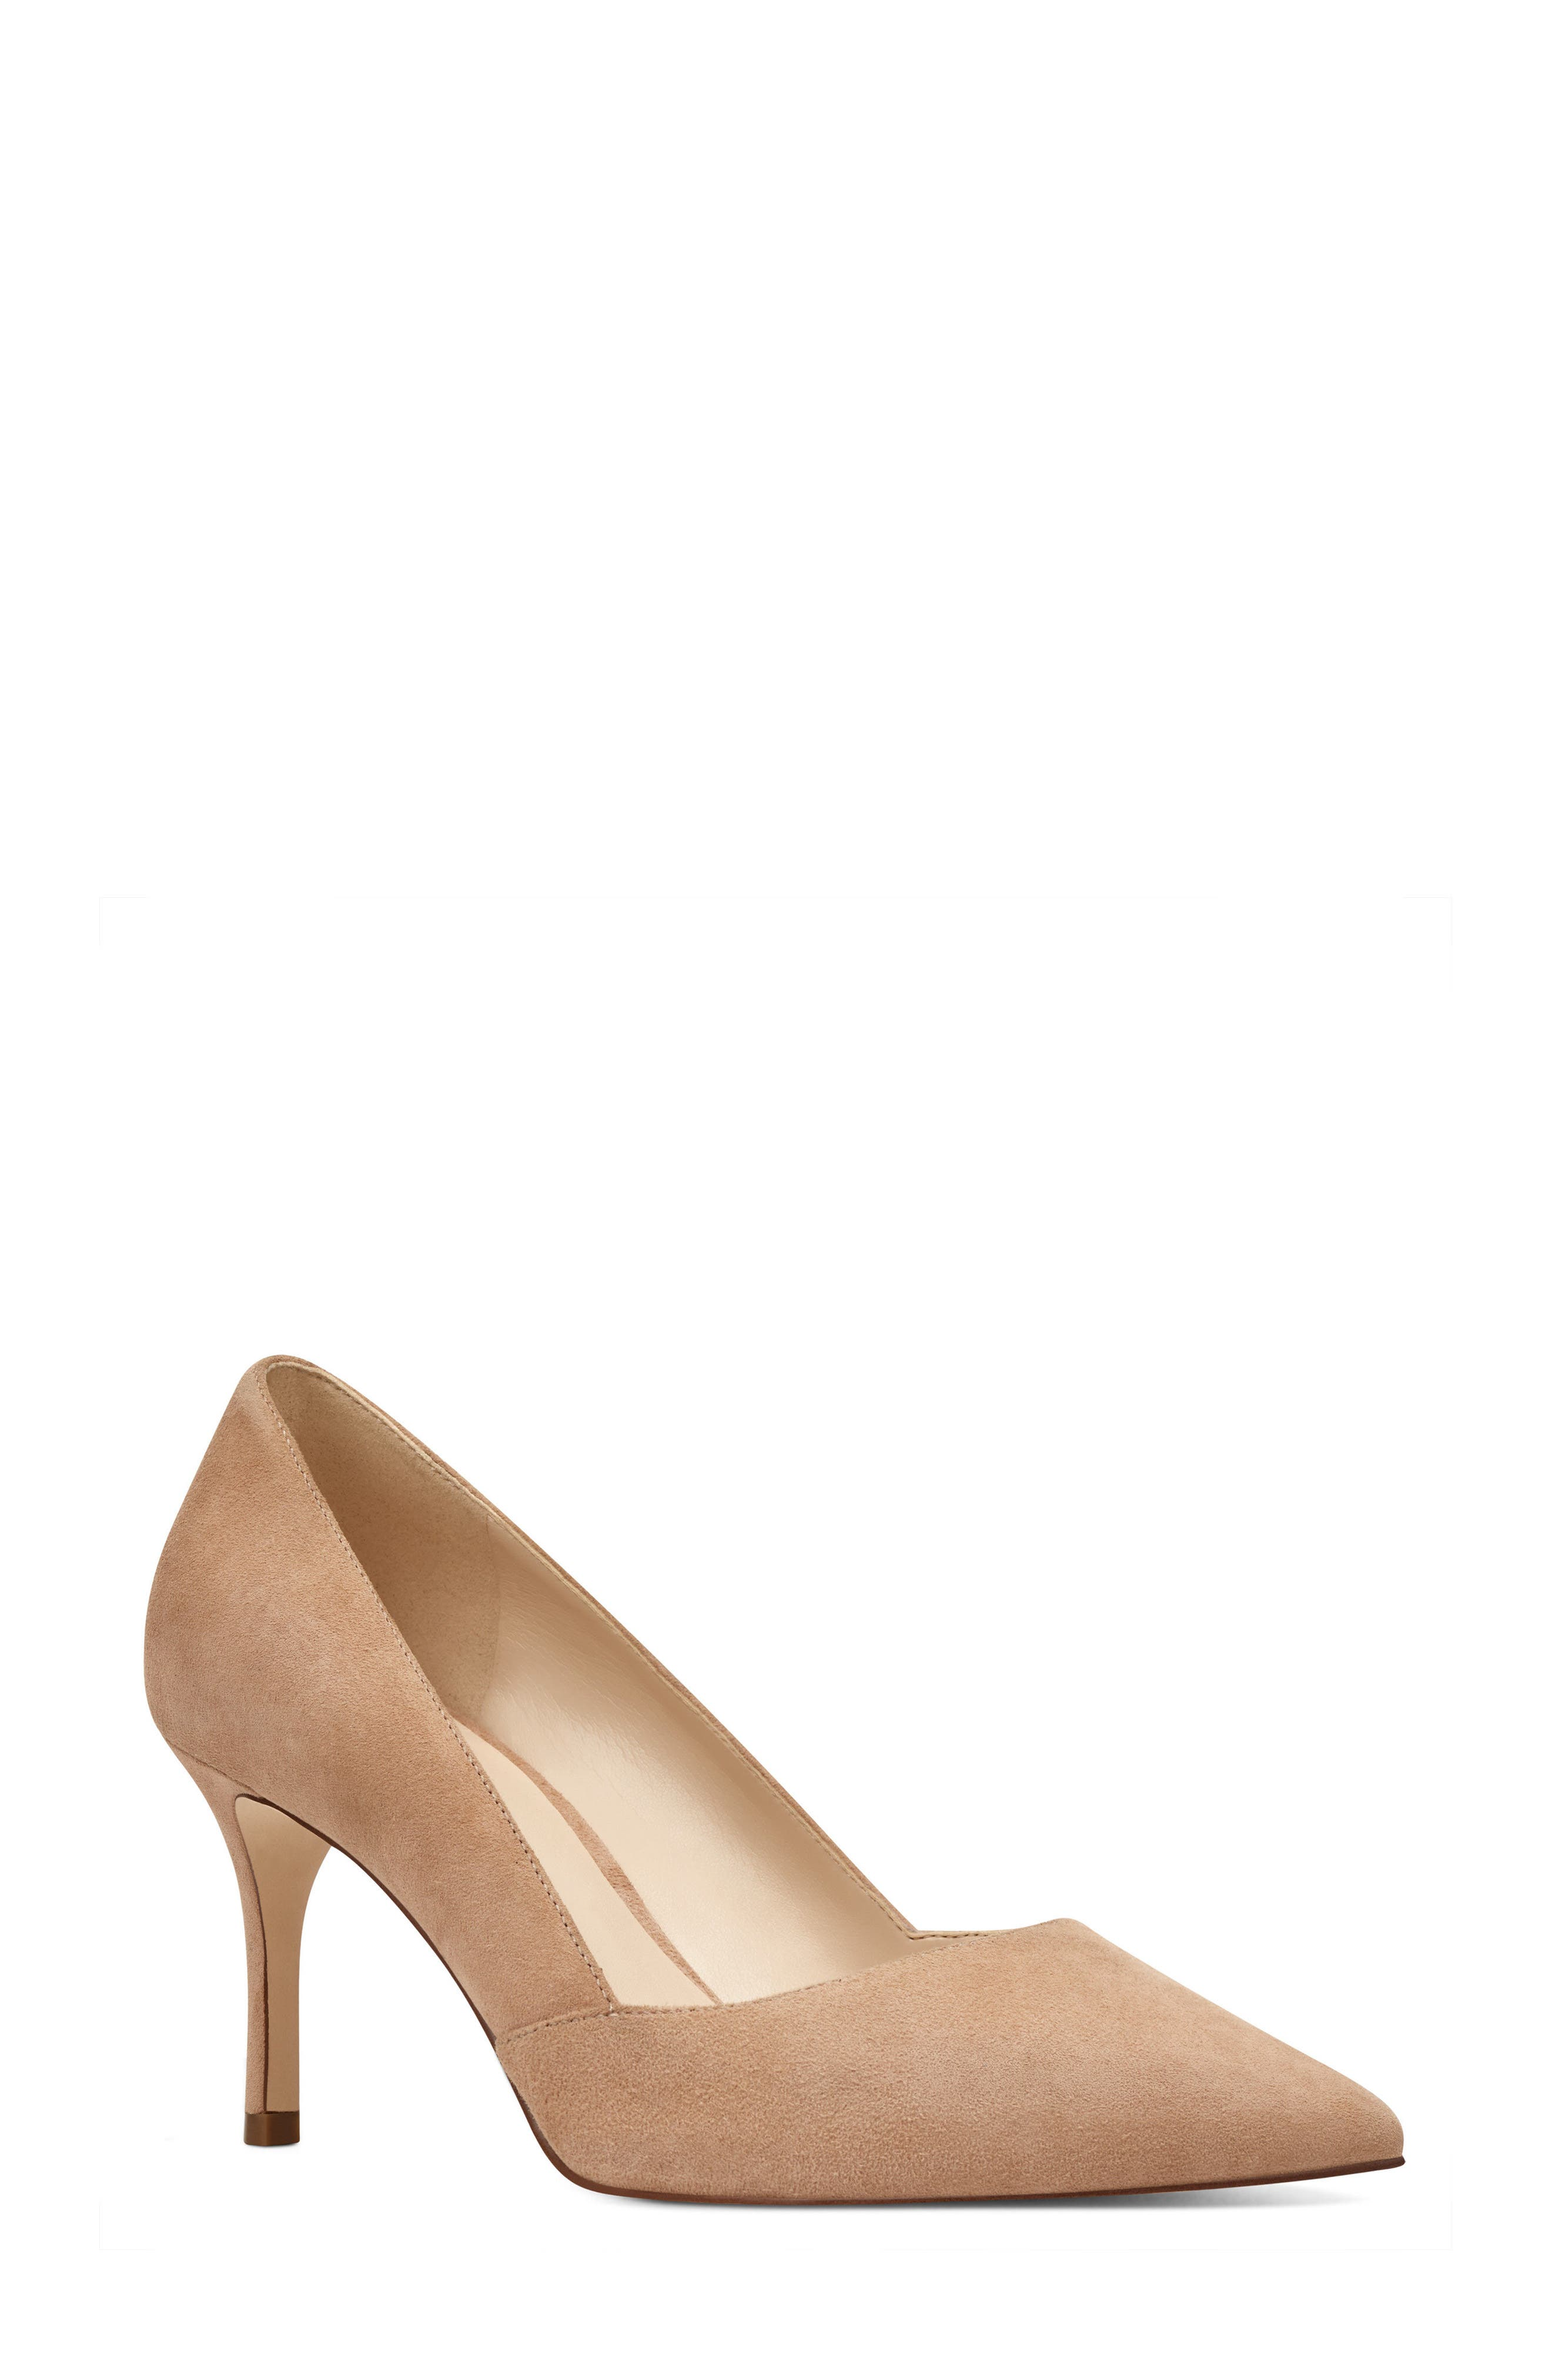 Mine Pointy Toe Pump,                             Main thumbnail 1, color,                             Light Natural Suede